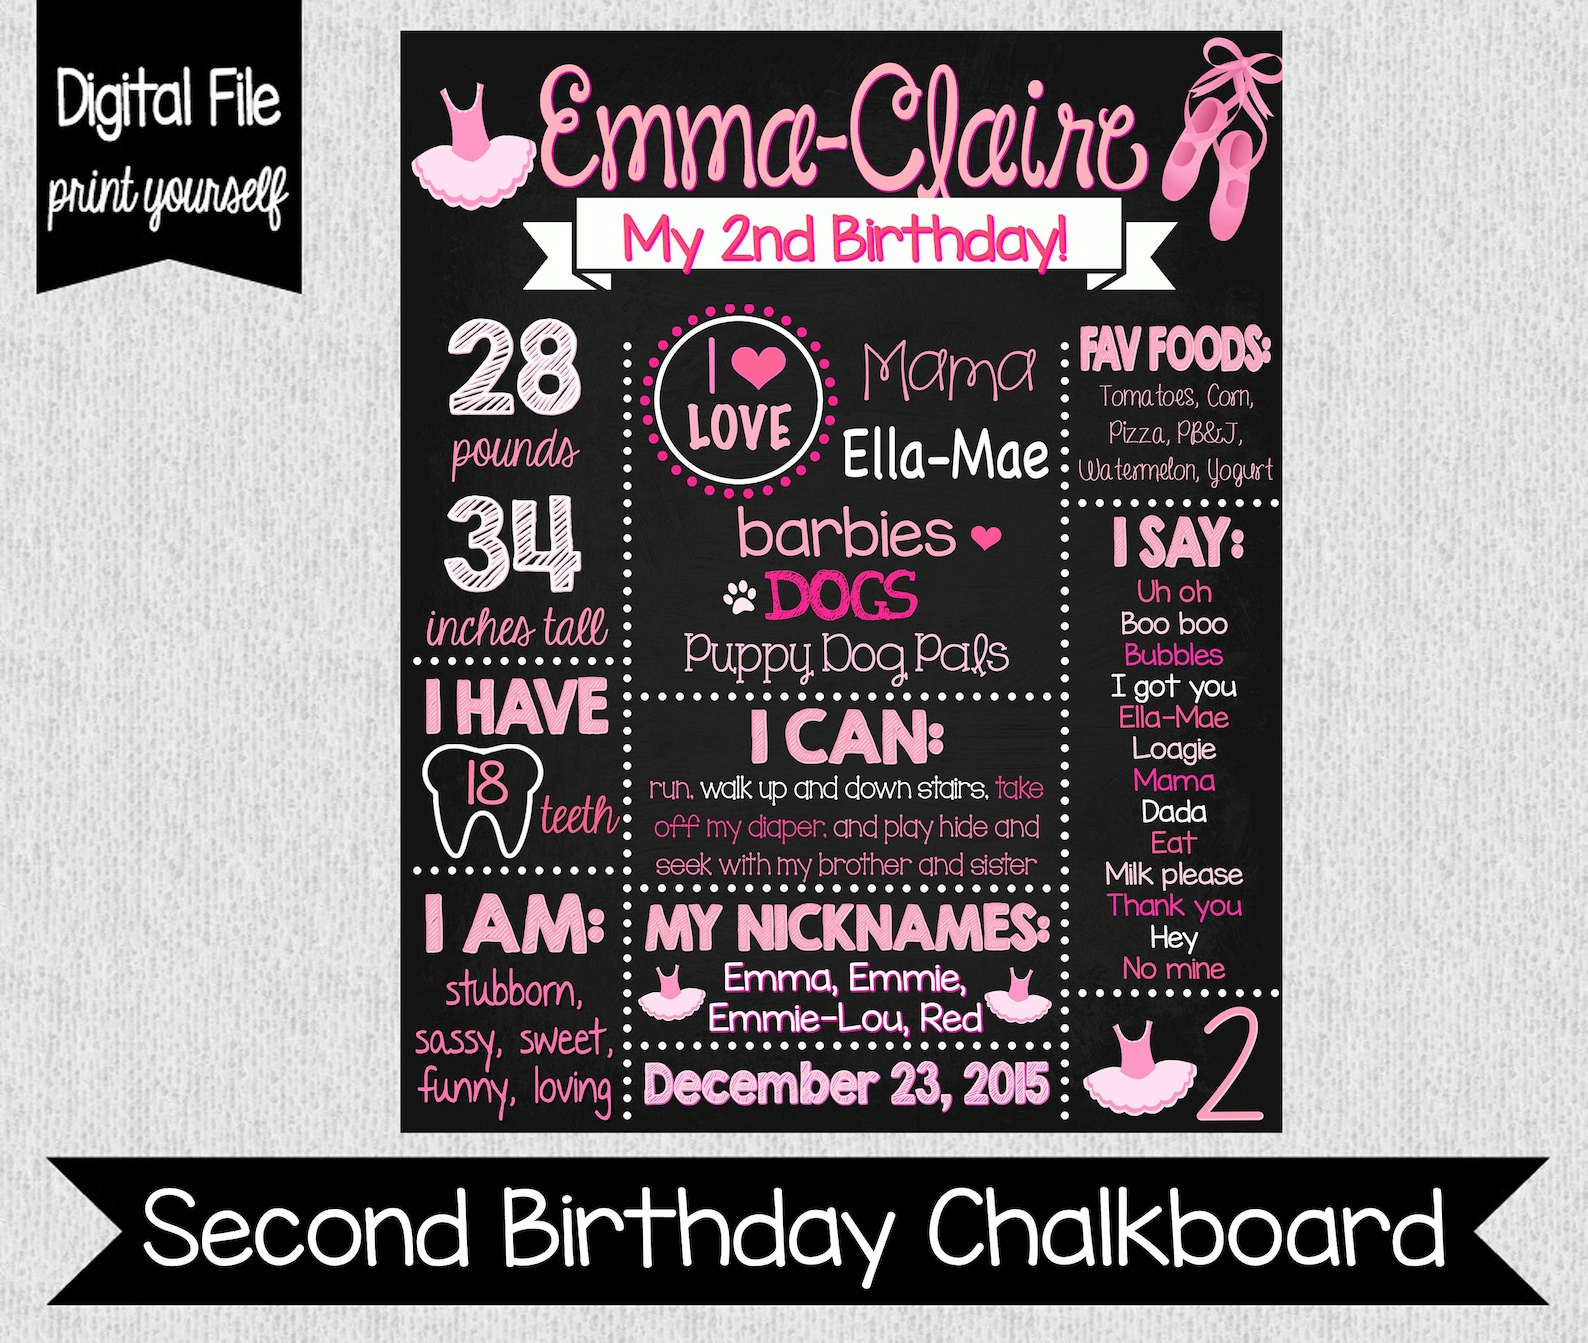 ballet themed 2nd birthday chalkboard - digital - ballerina chalkboard - girl's 2nd birthday chalkboard - pink ballerina cha